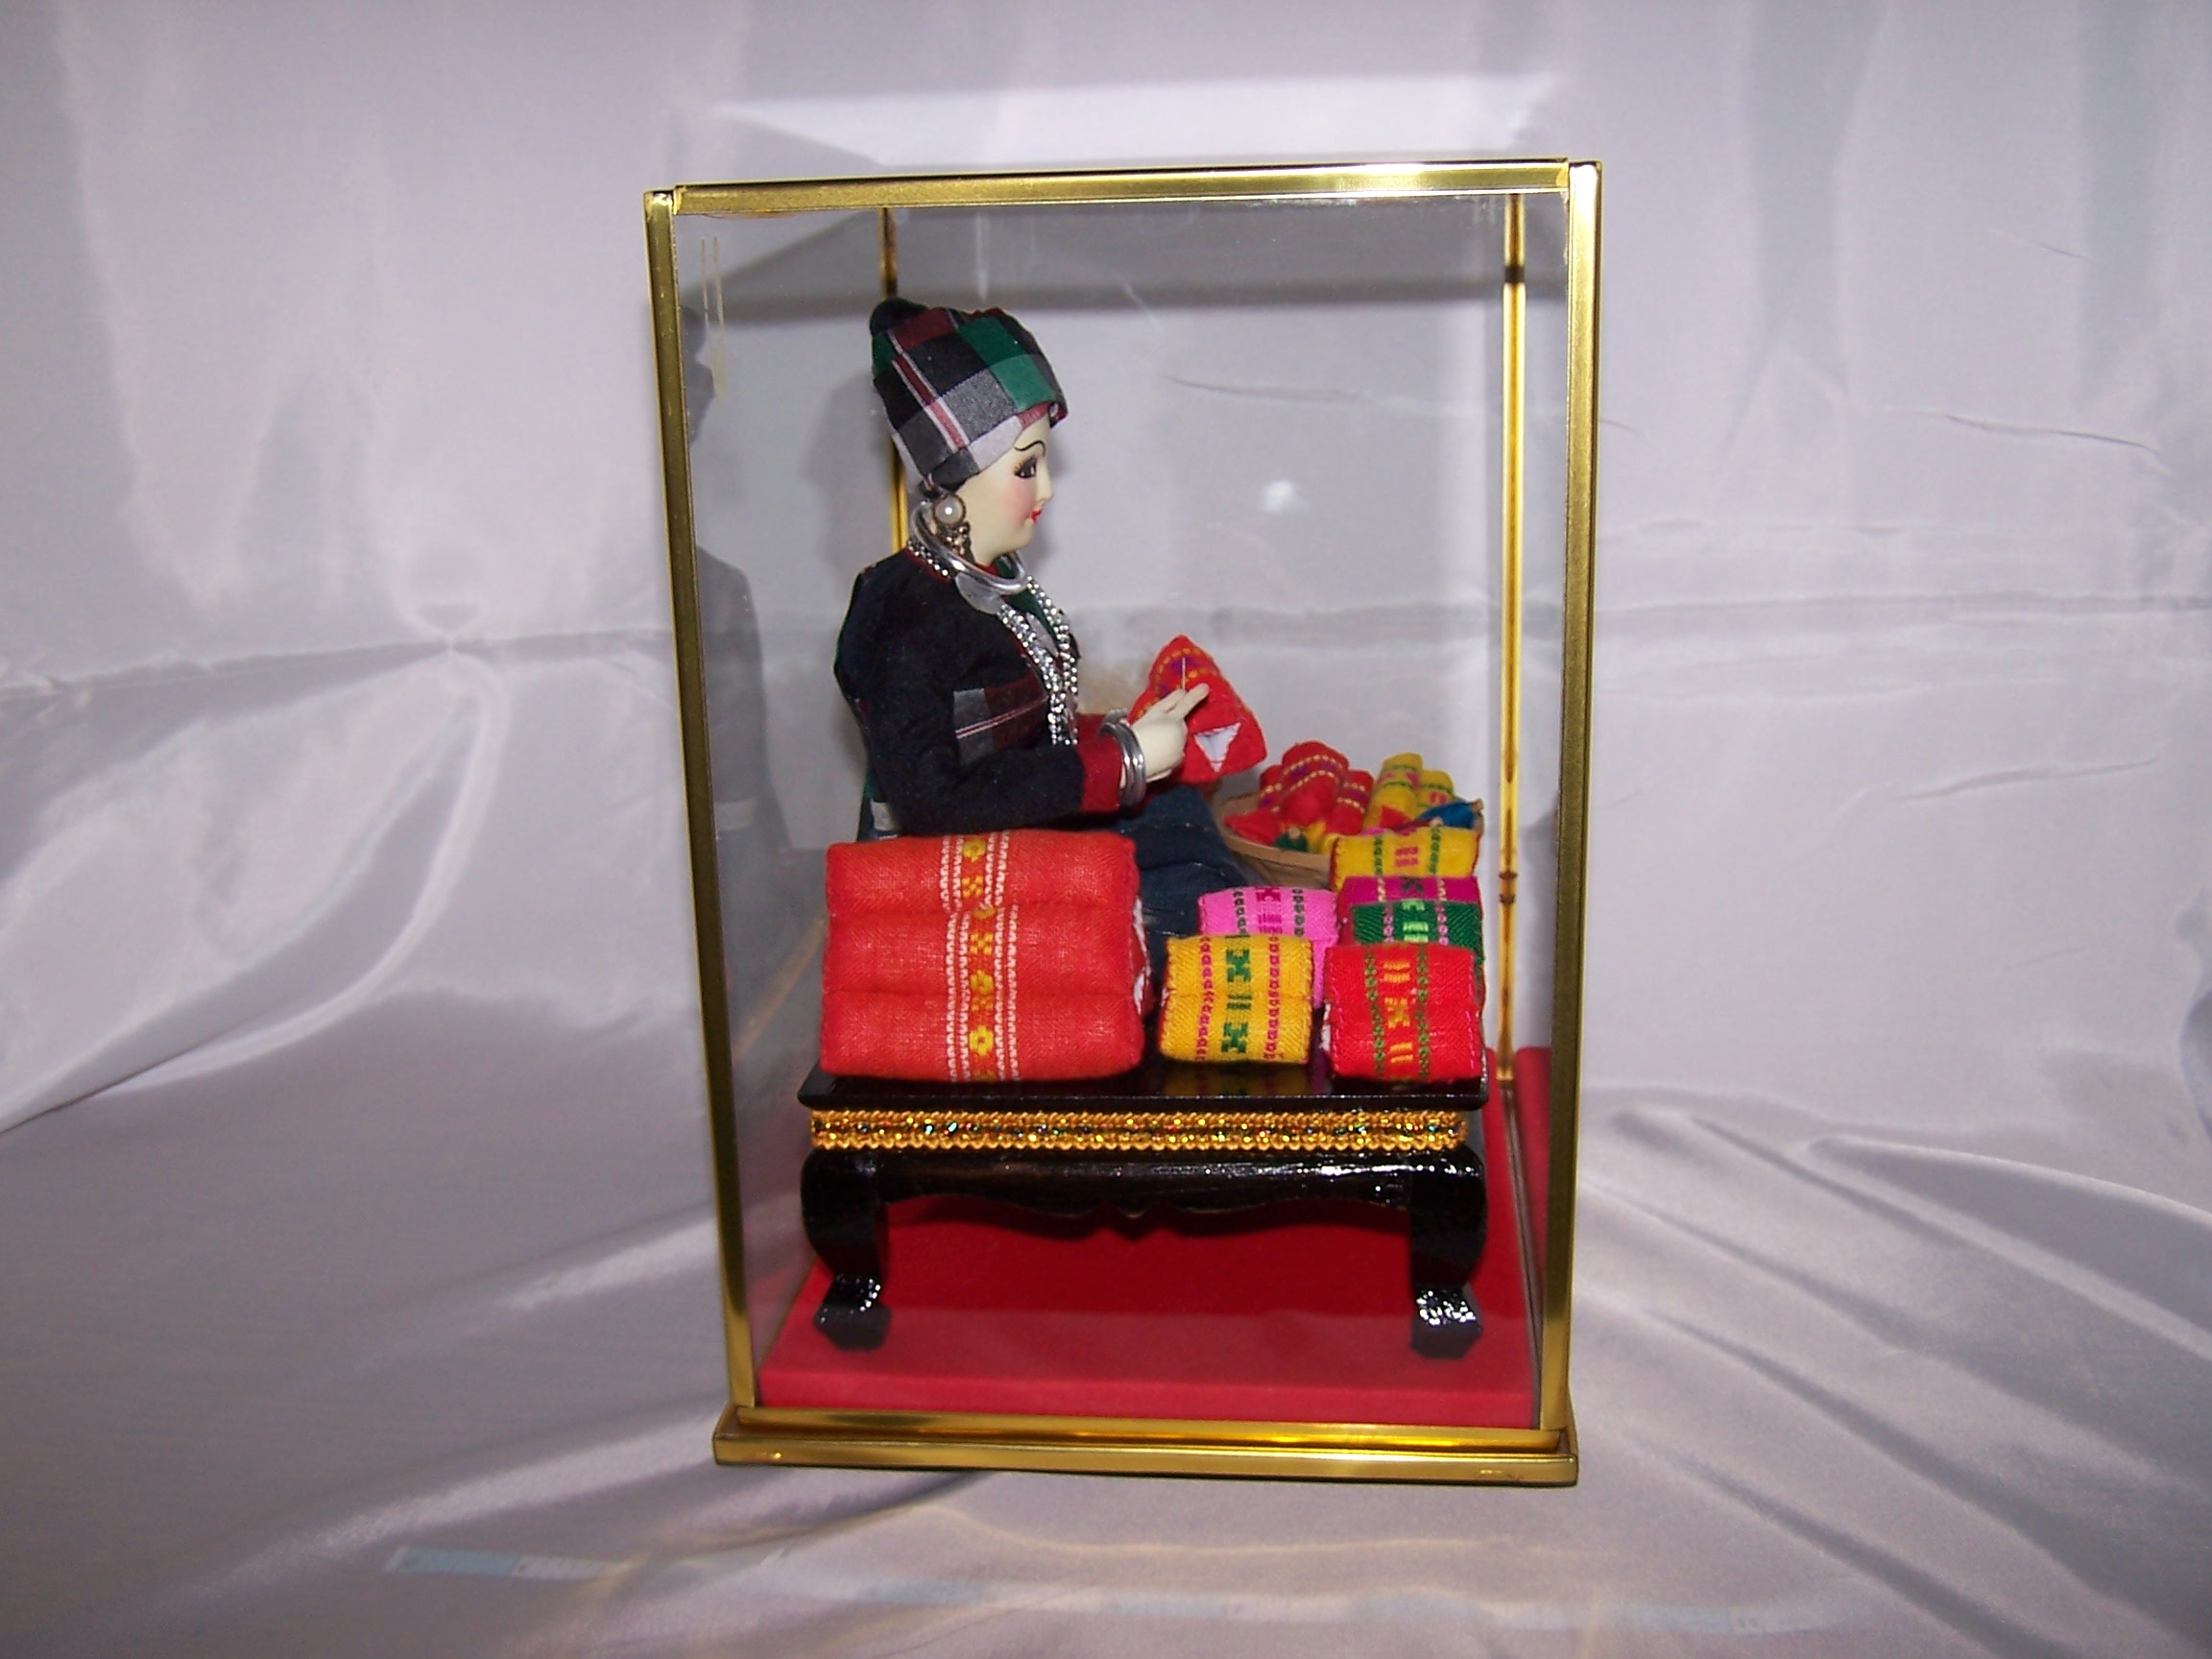 Image 7 of Oriental Seamstress Doll in Case